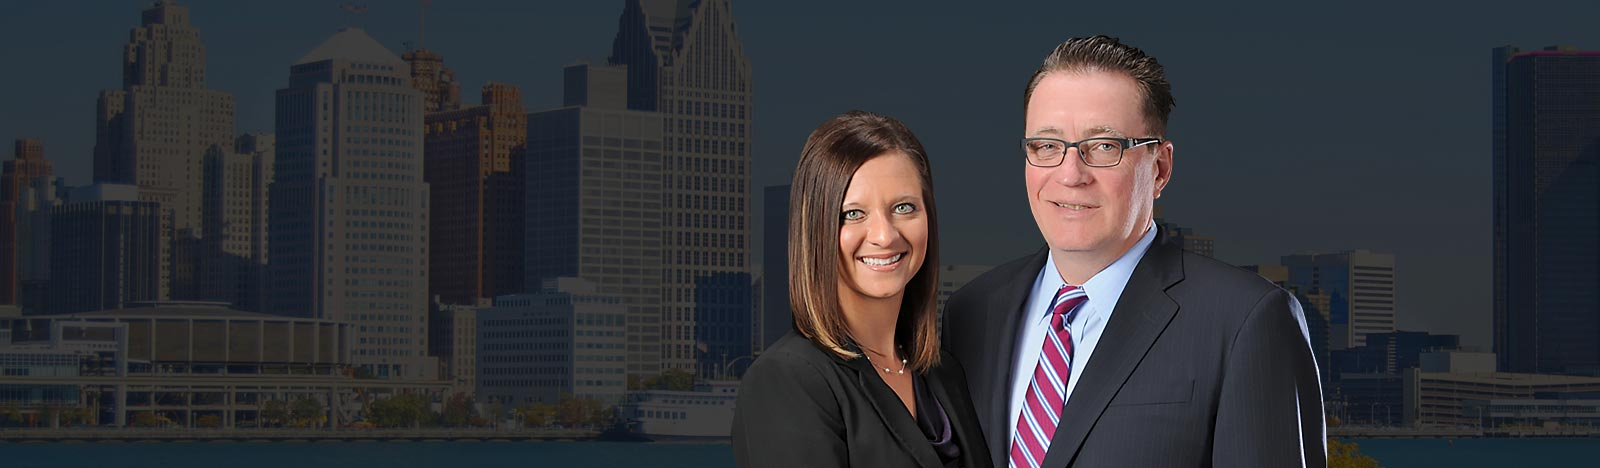 J.B. Biekse & Jennifer Alfonsi, Attorneys at Law they can help you with your social security disability application